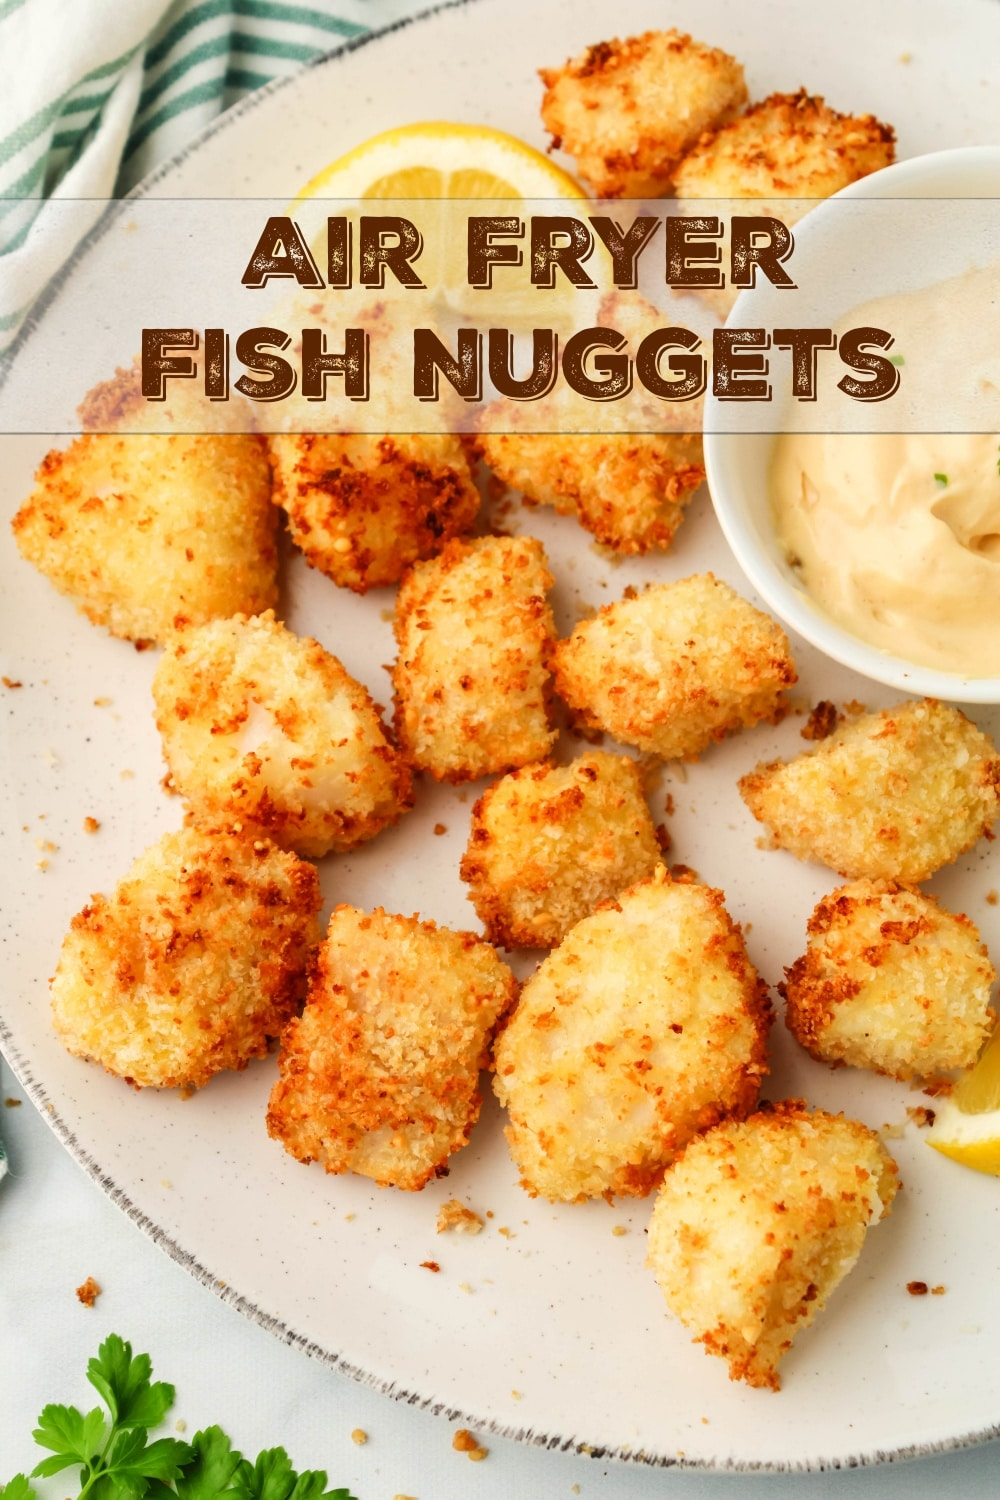 Deliciously flakey fish nuggets made right in your air fryer. These crunchy bites just might replace your kid's chicken nuggets all-together. via @cmpollak1